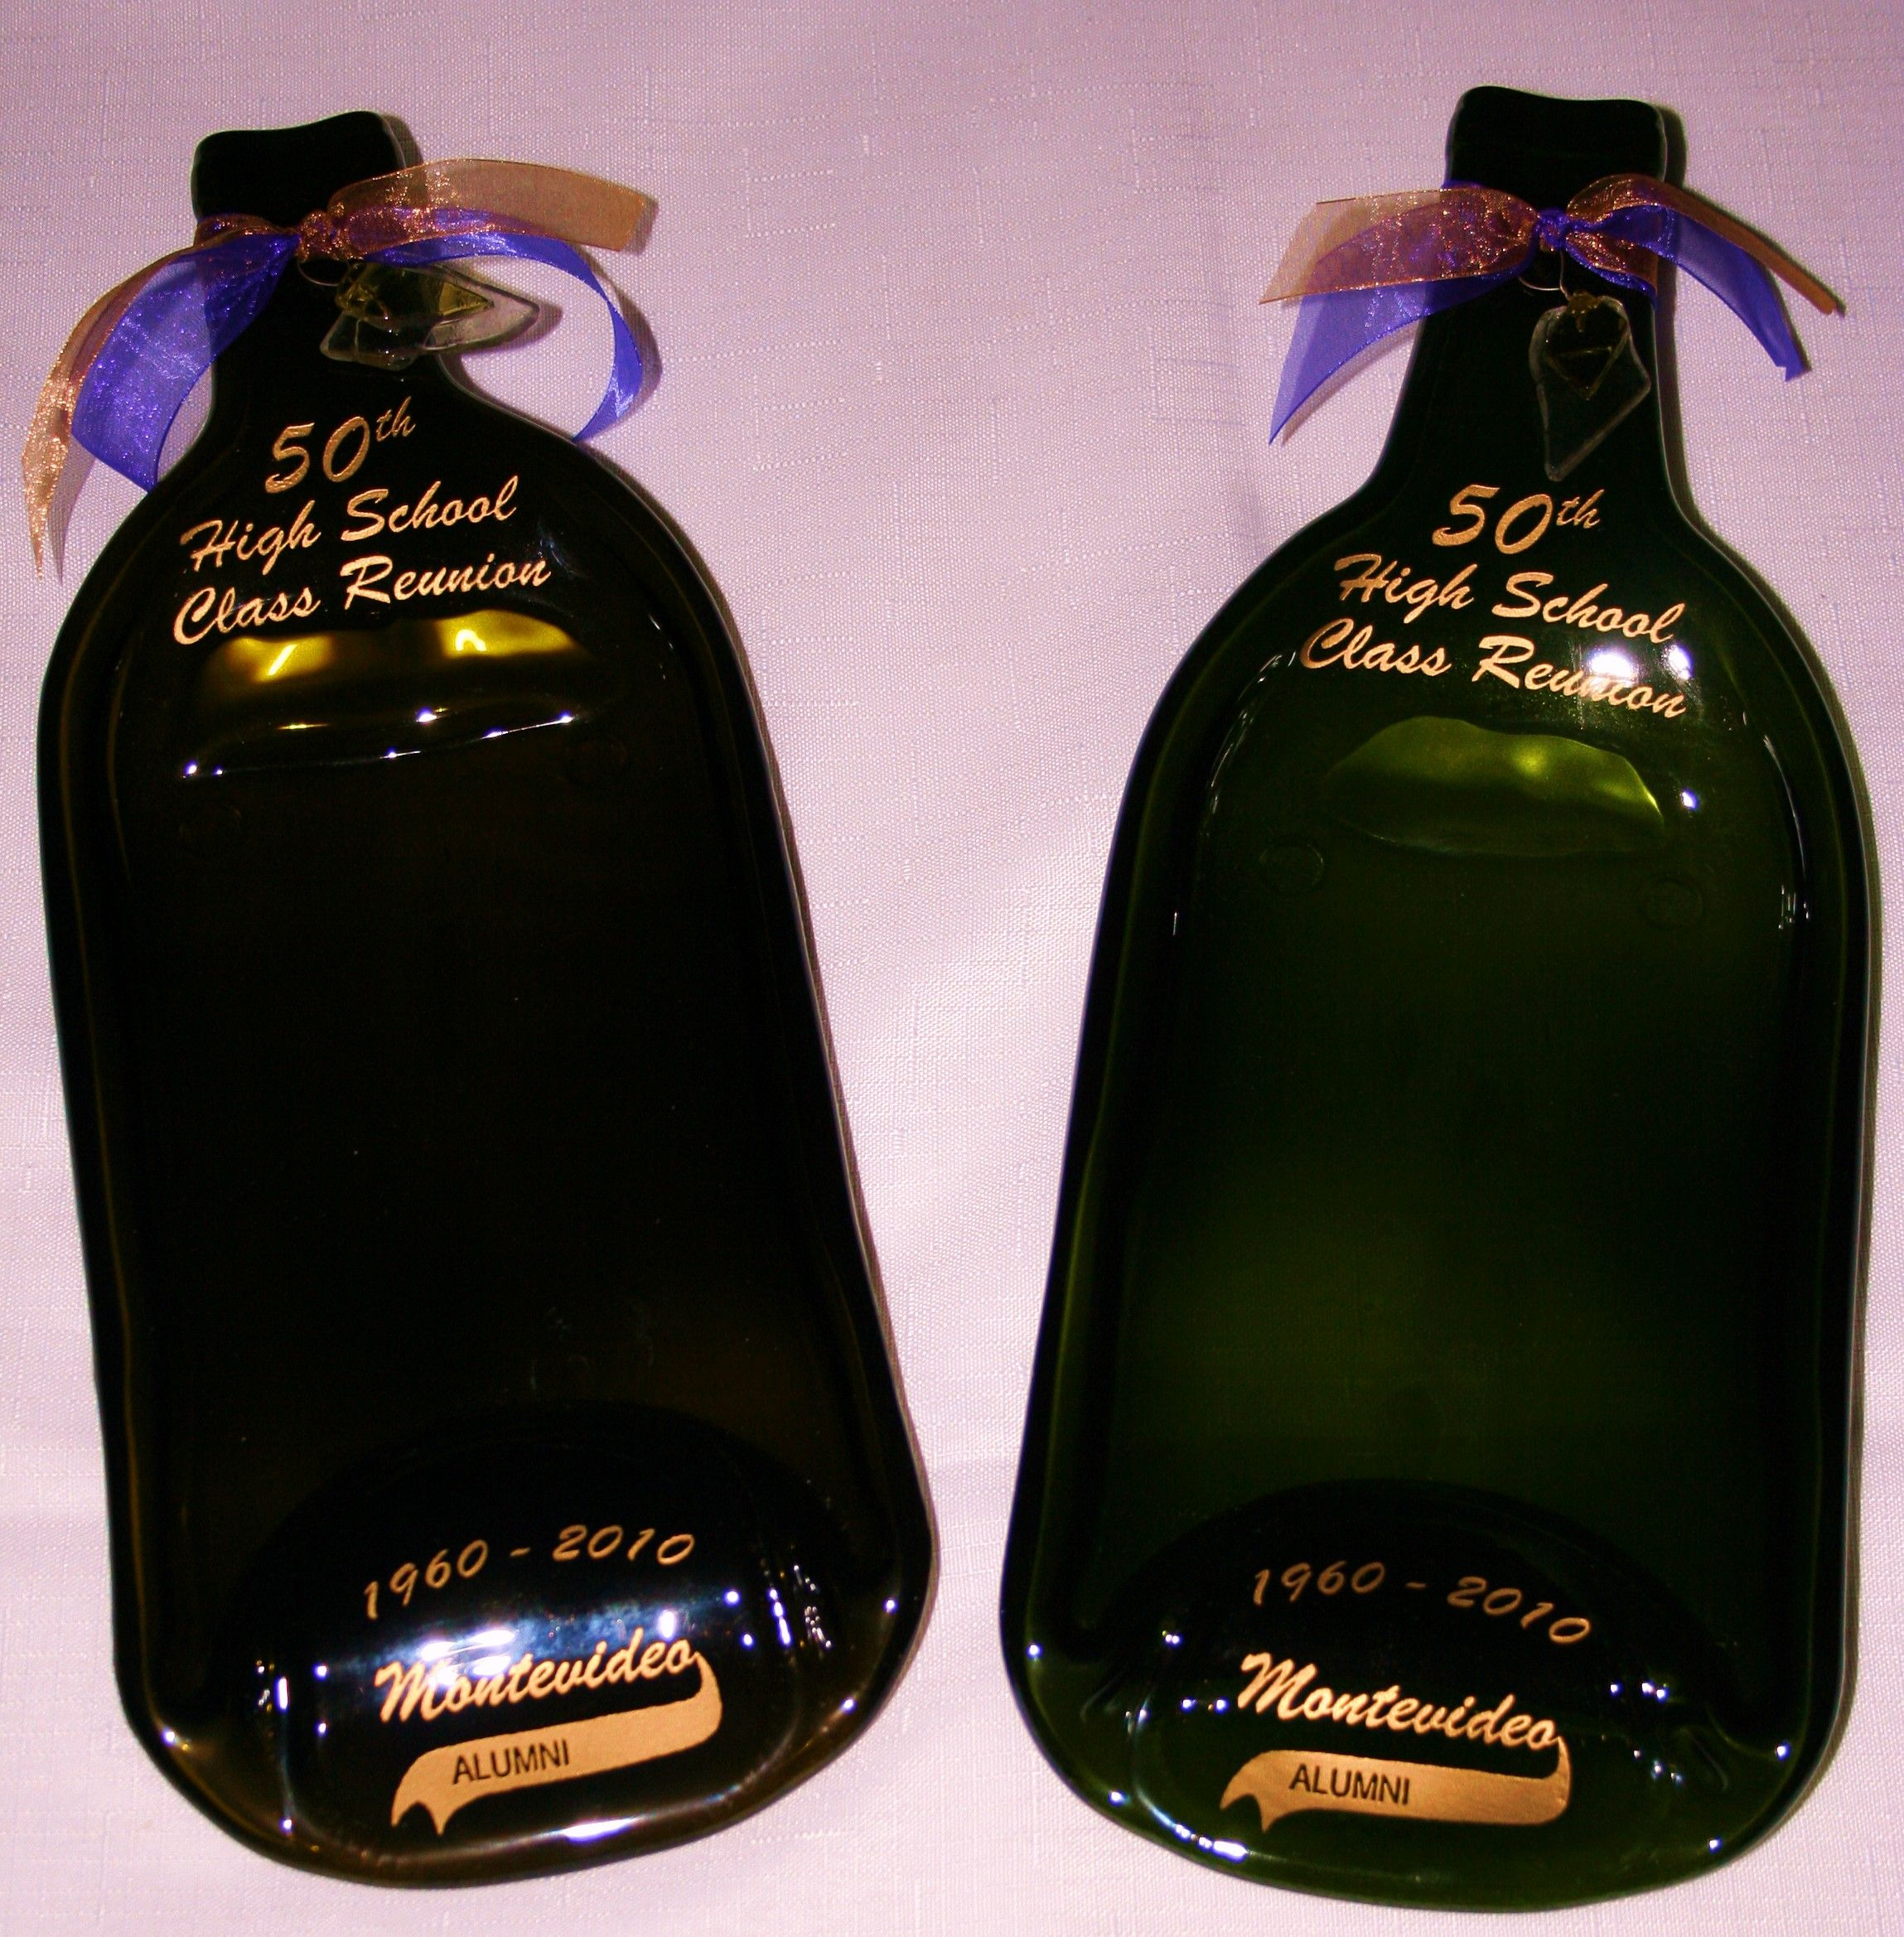 L Wine Bottle Bowls Personalized To Be H S Class Reunion Door Prizes At A Th